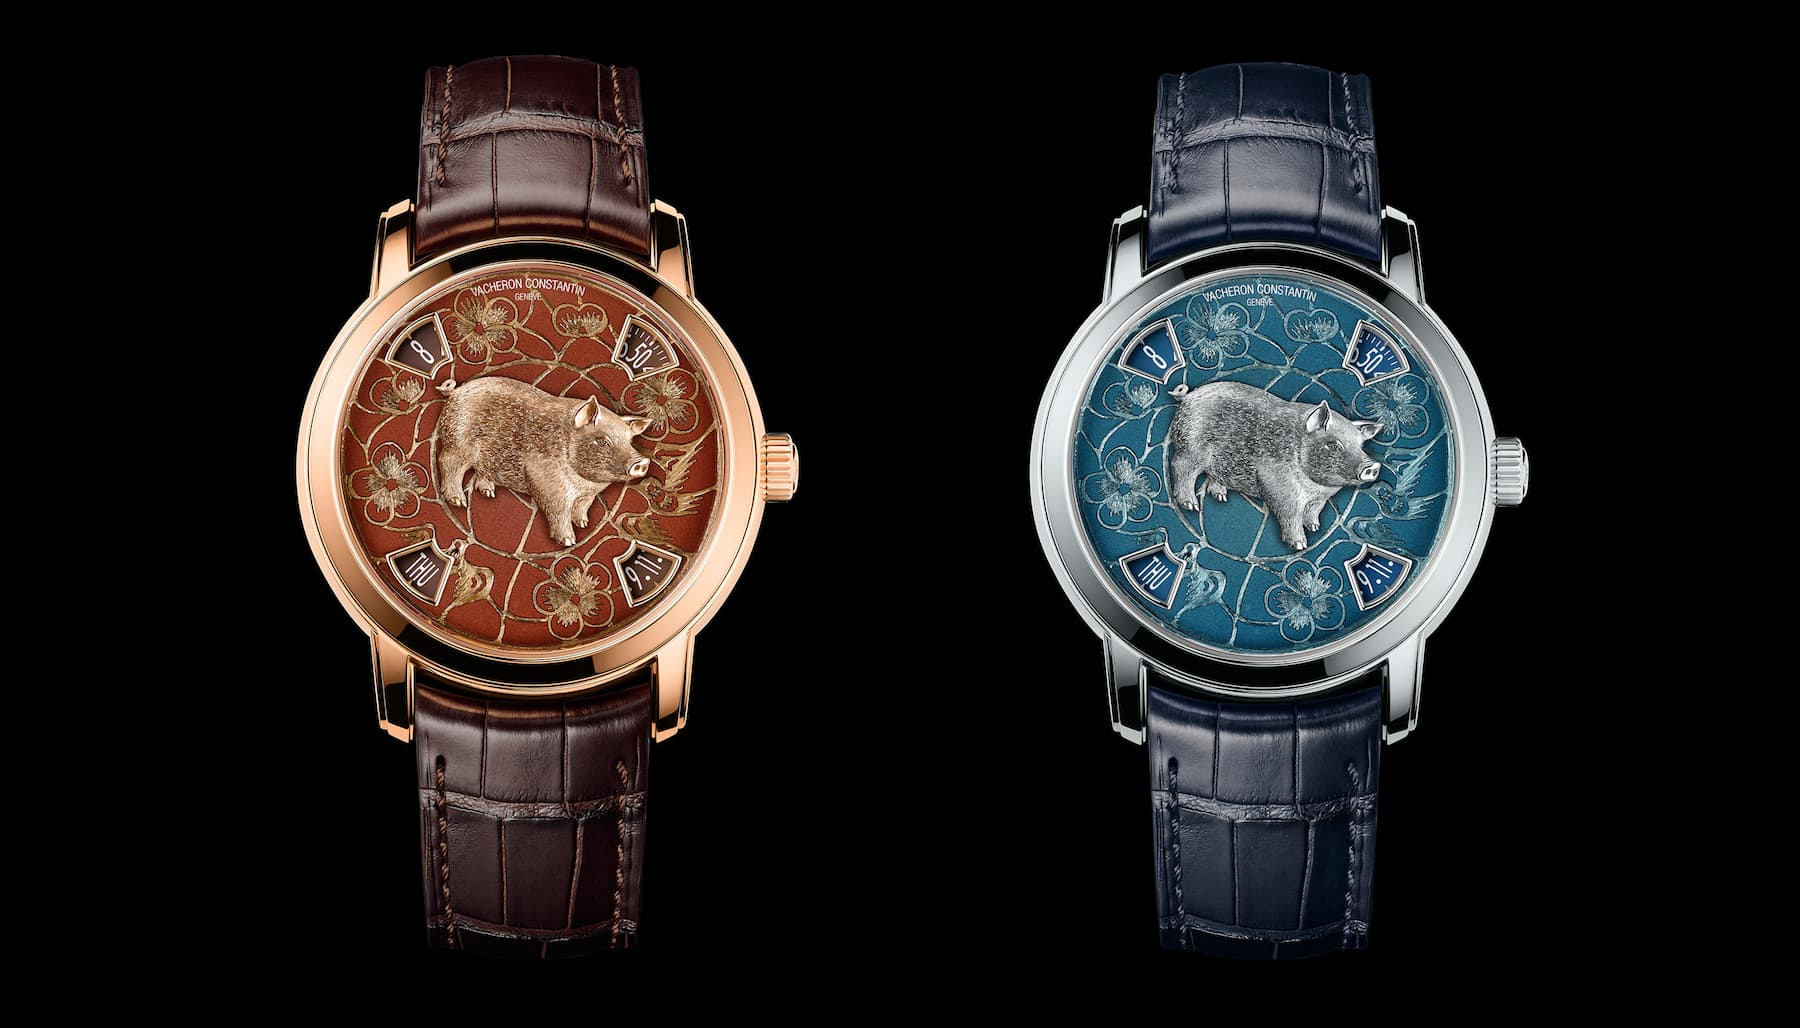 Year of the Pig watches: Vacheron Constantin